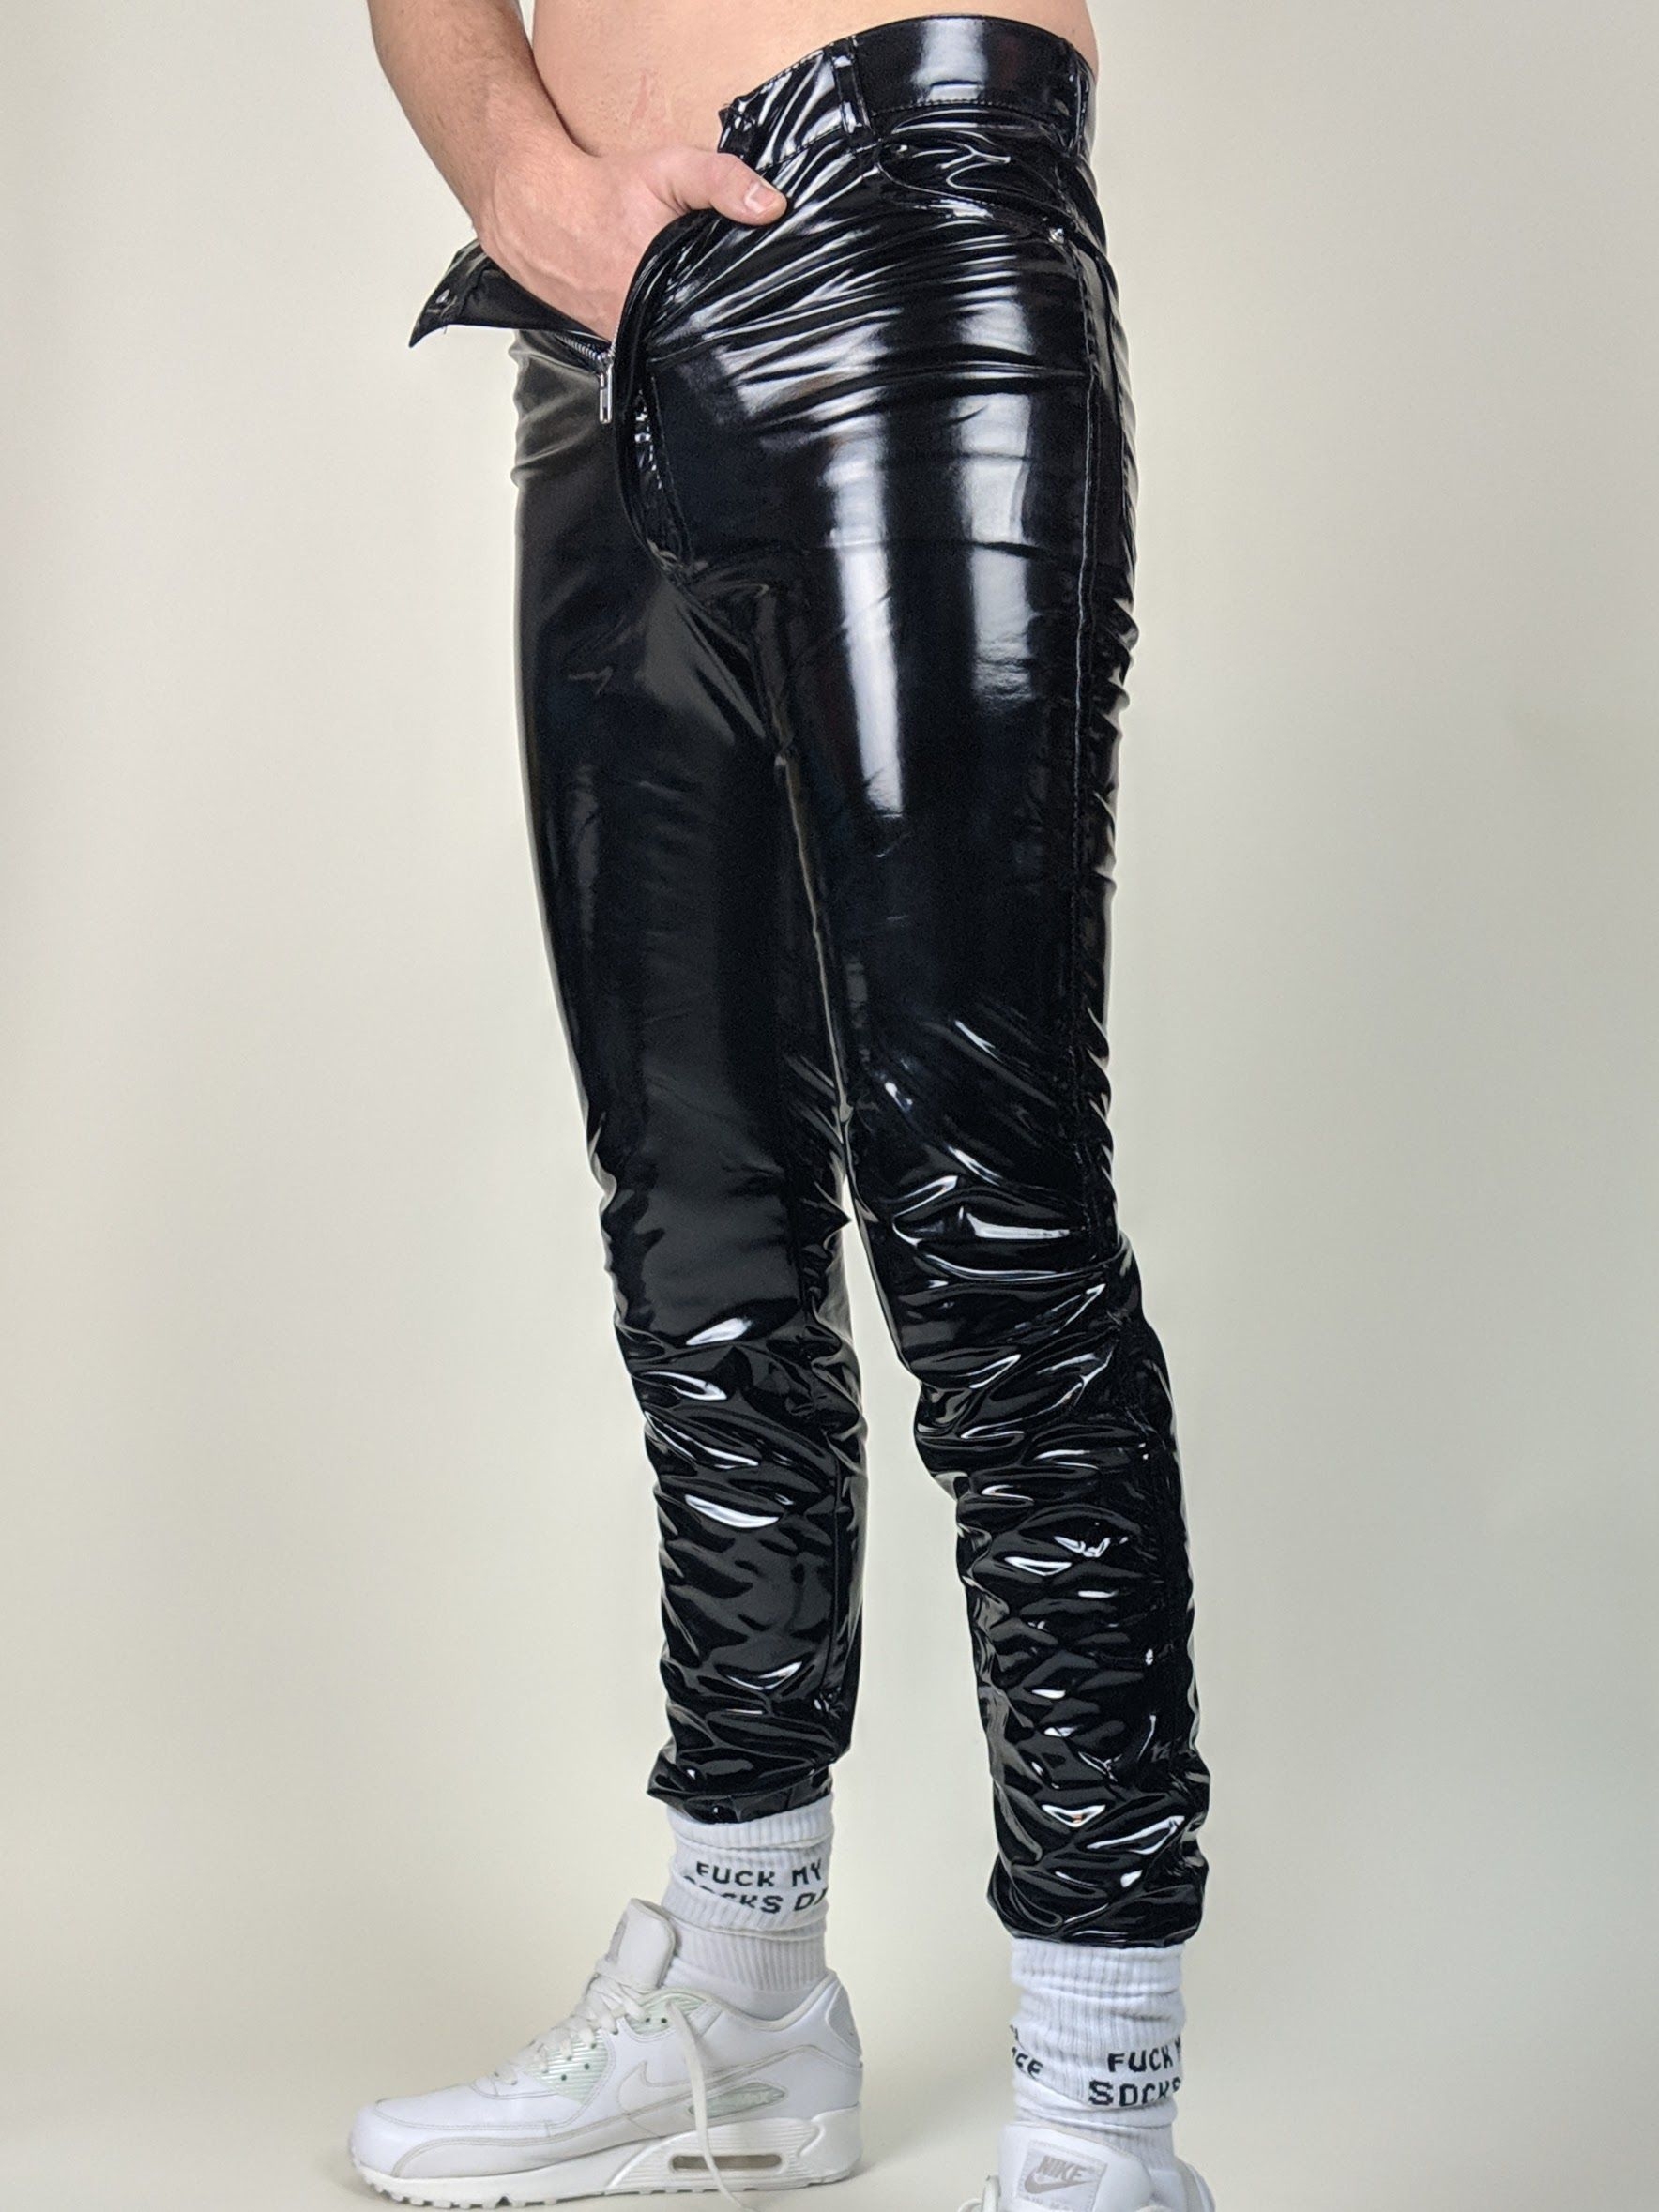 964ce23079 Skinny Leather Pants, Leather Jeans, Skinny Jeans, Fetish Fashion, Latex  Fashion,